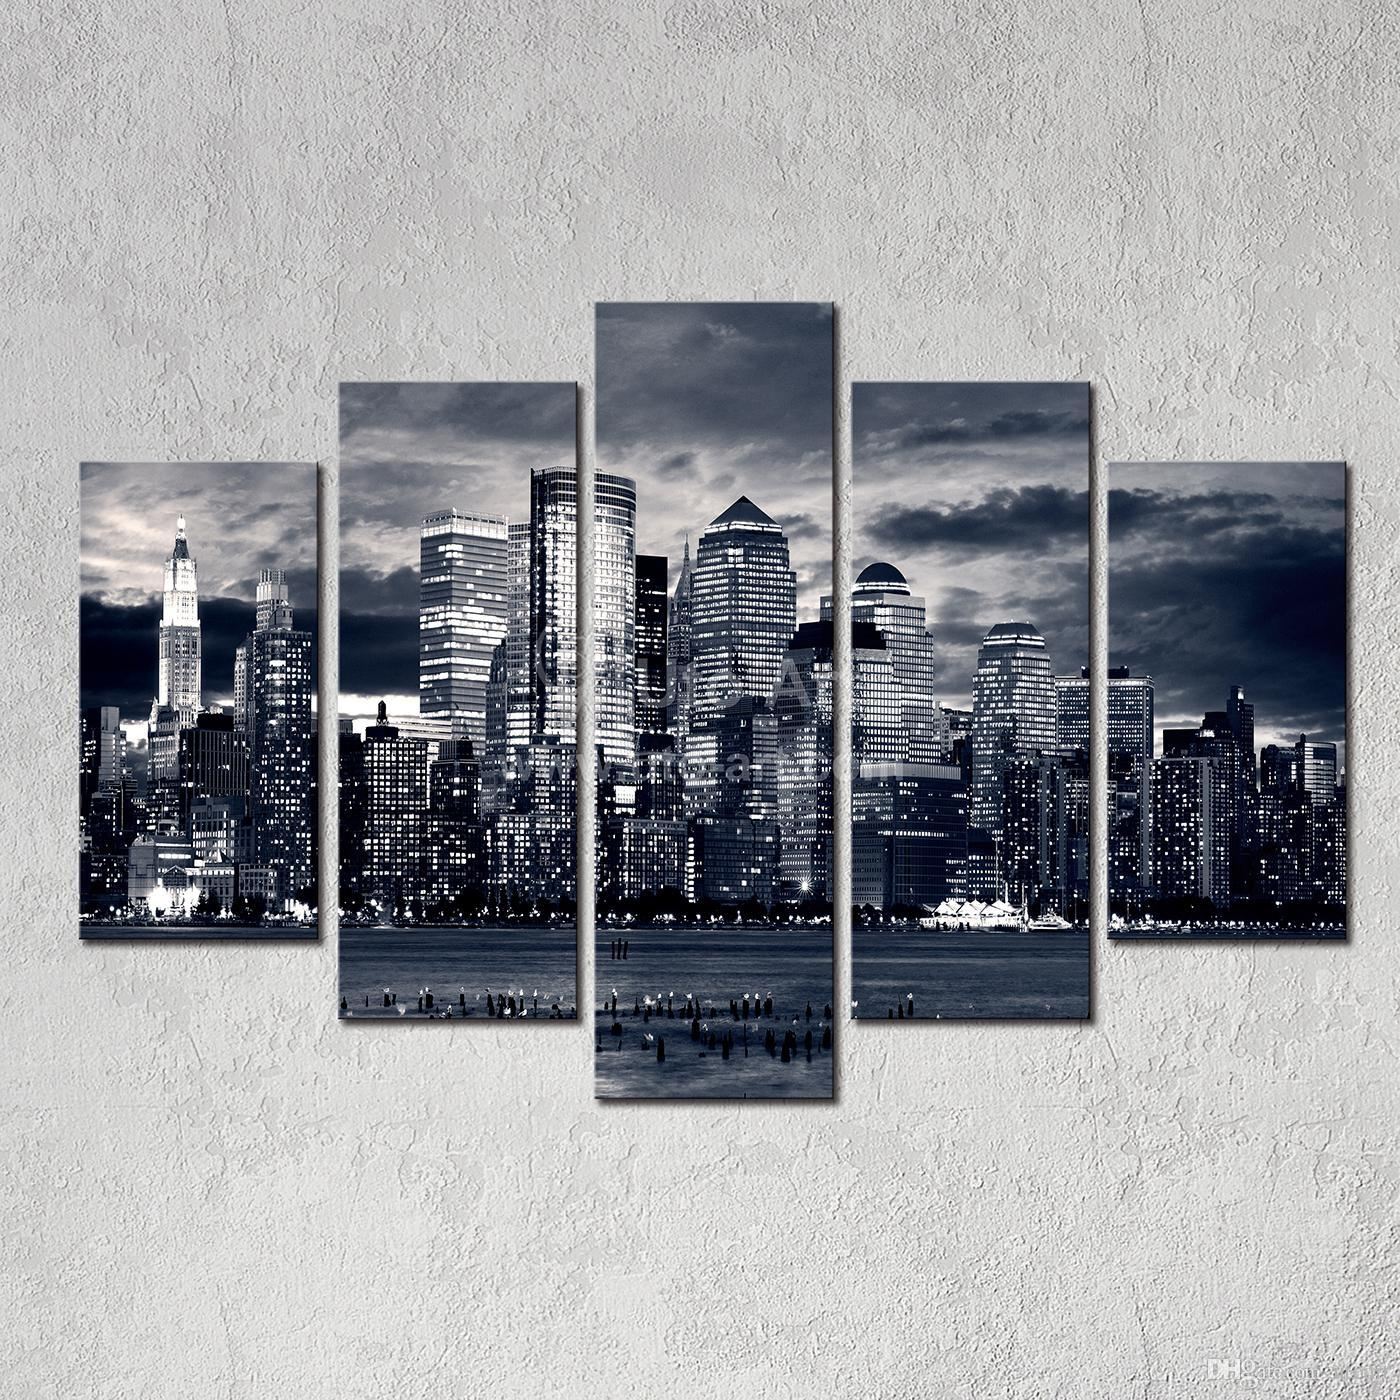 Large Framed Wall Art New York City Landscape Sunset: 20 Best Collection Of New York City Canvas Wall Art